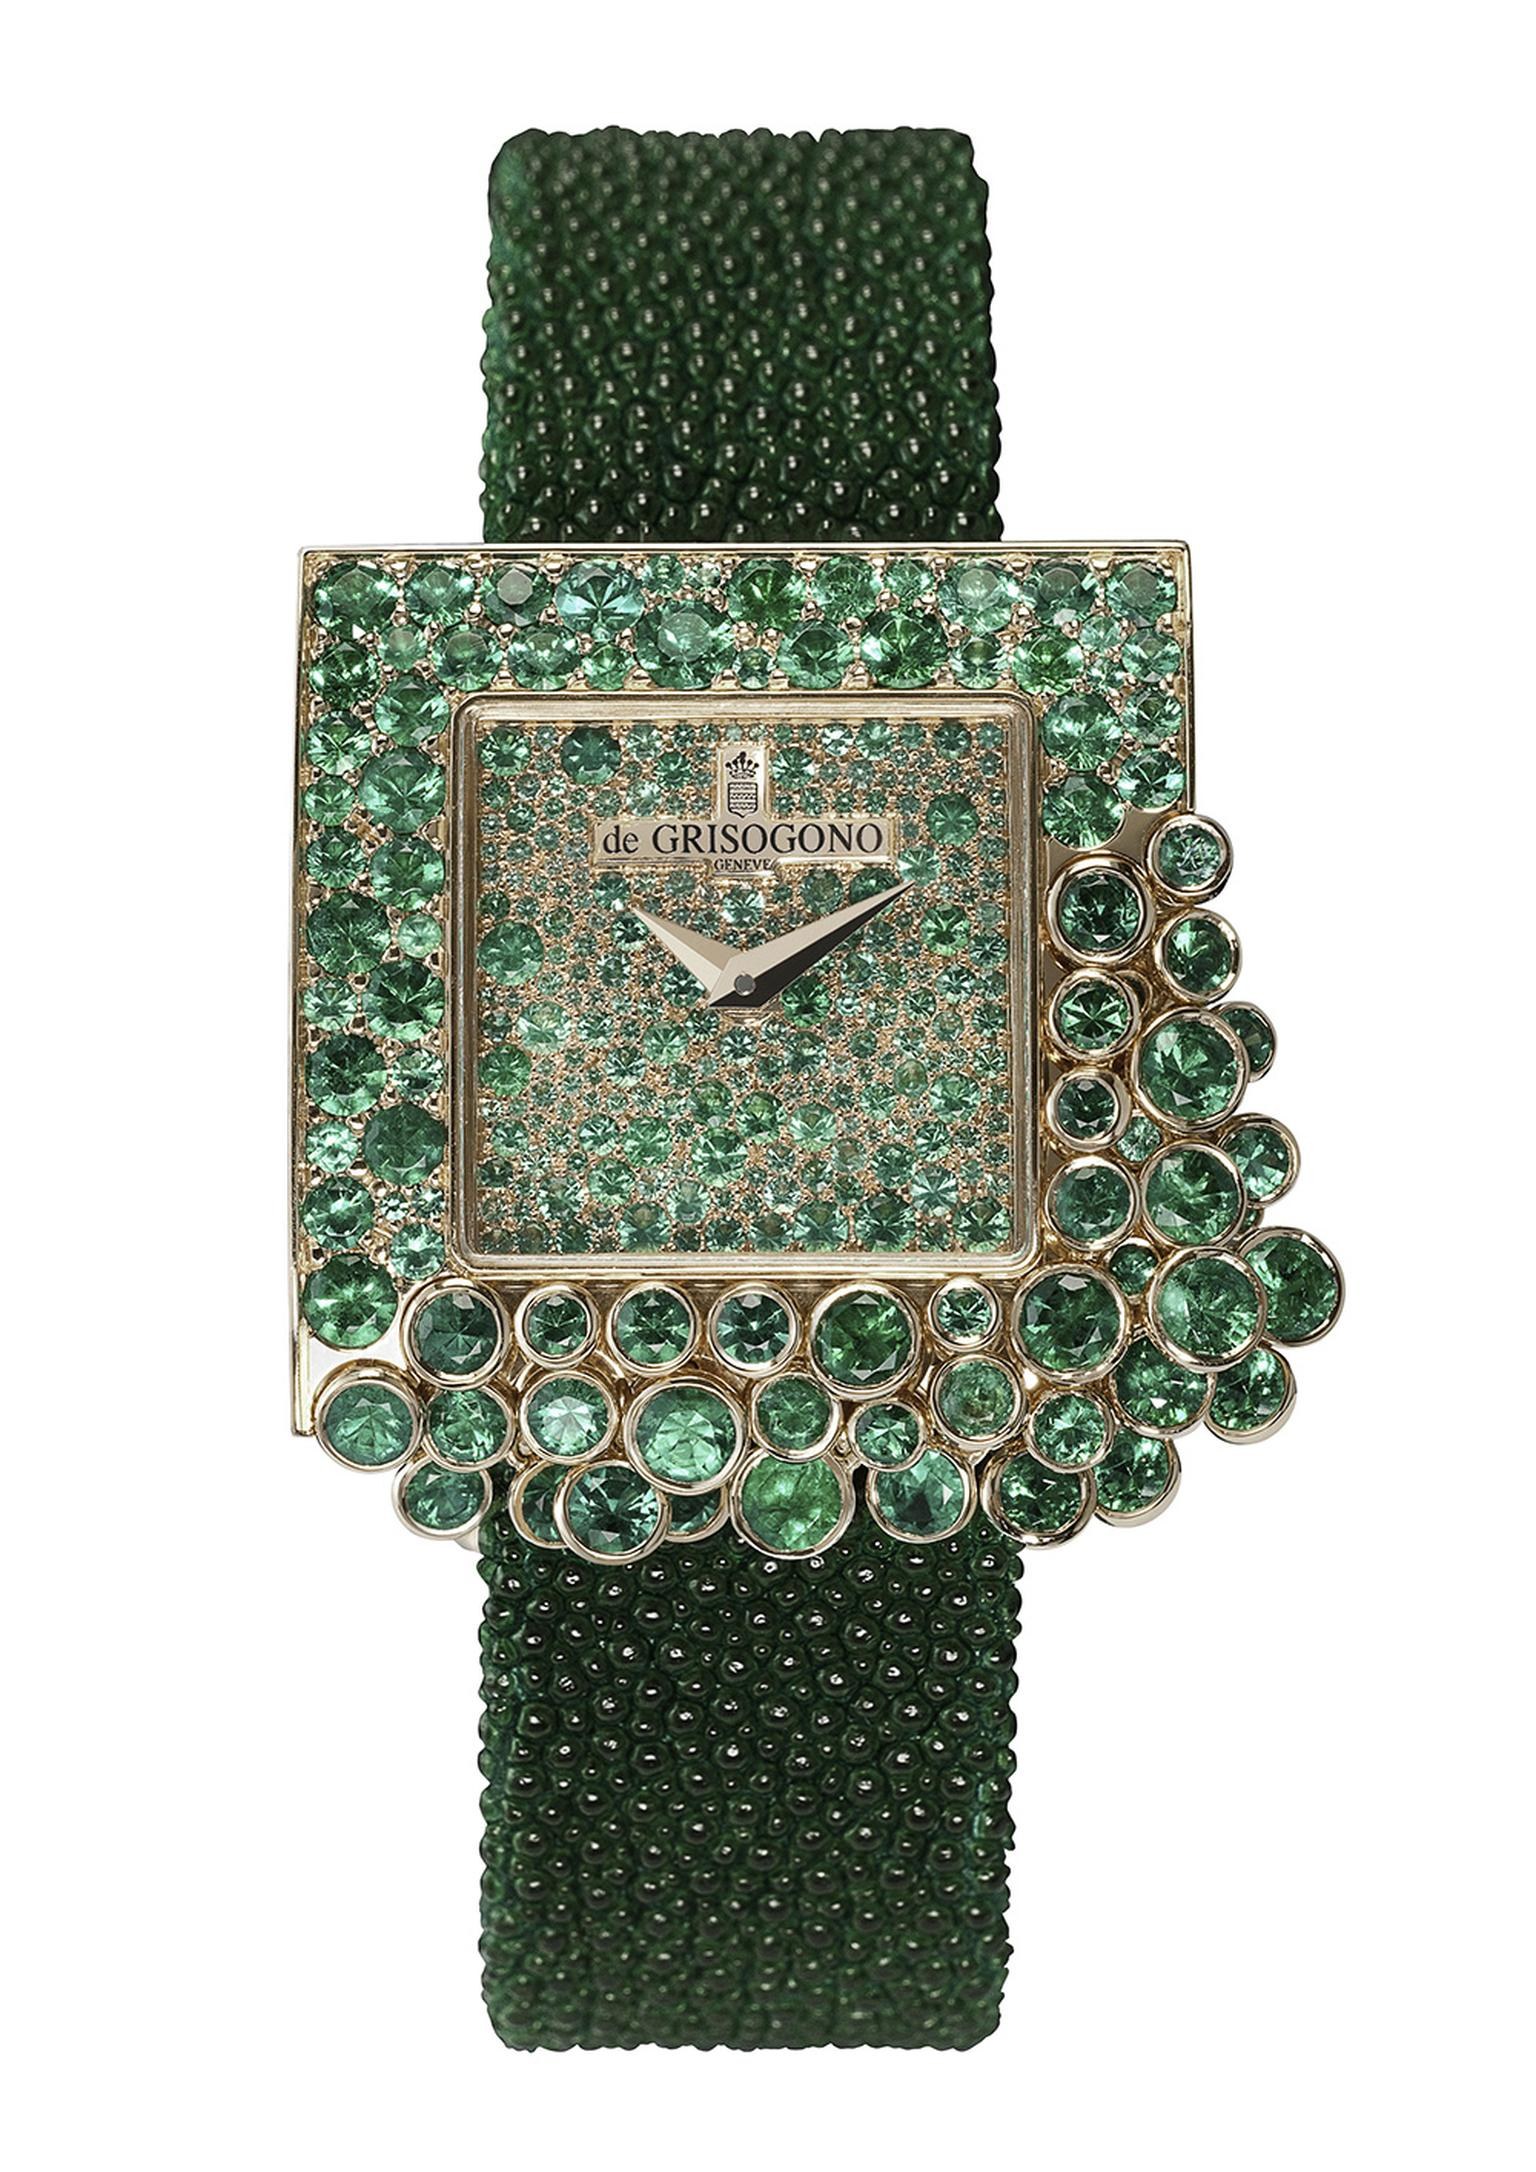 deGRISOGONO-SUGAR-WATCH-GREEN-S15-PSoldat.jpg